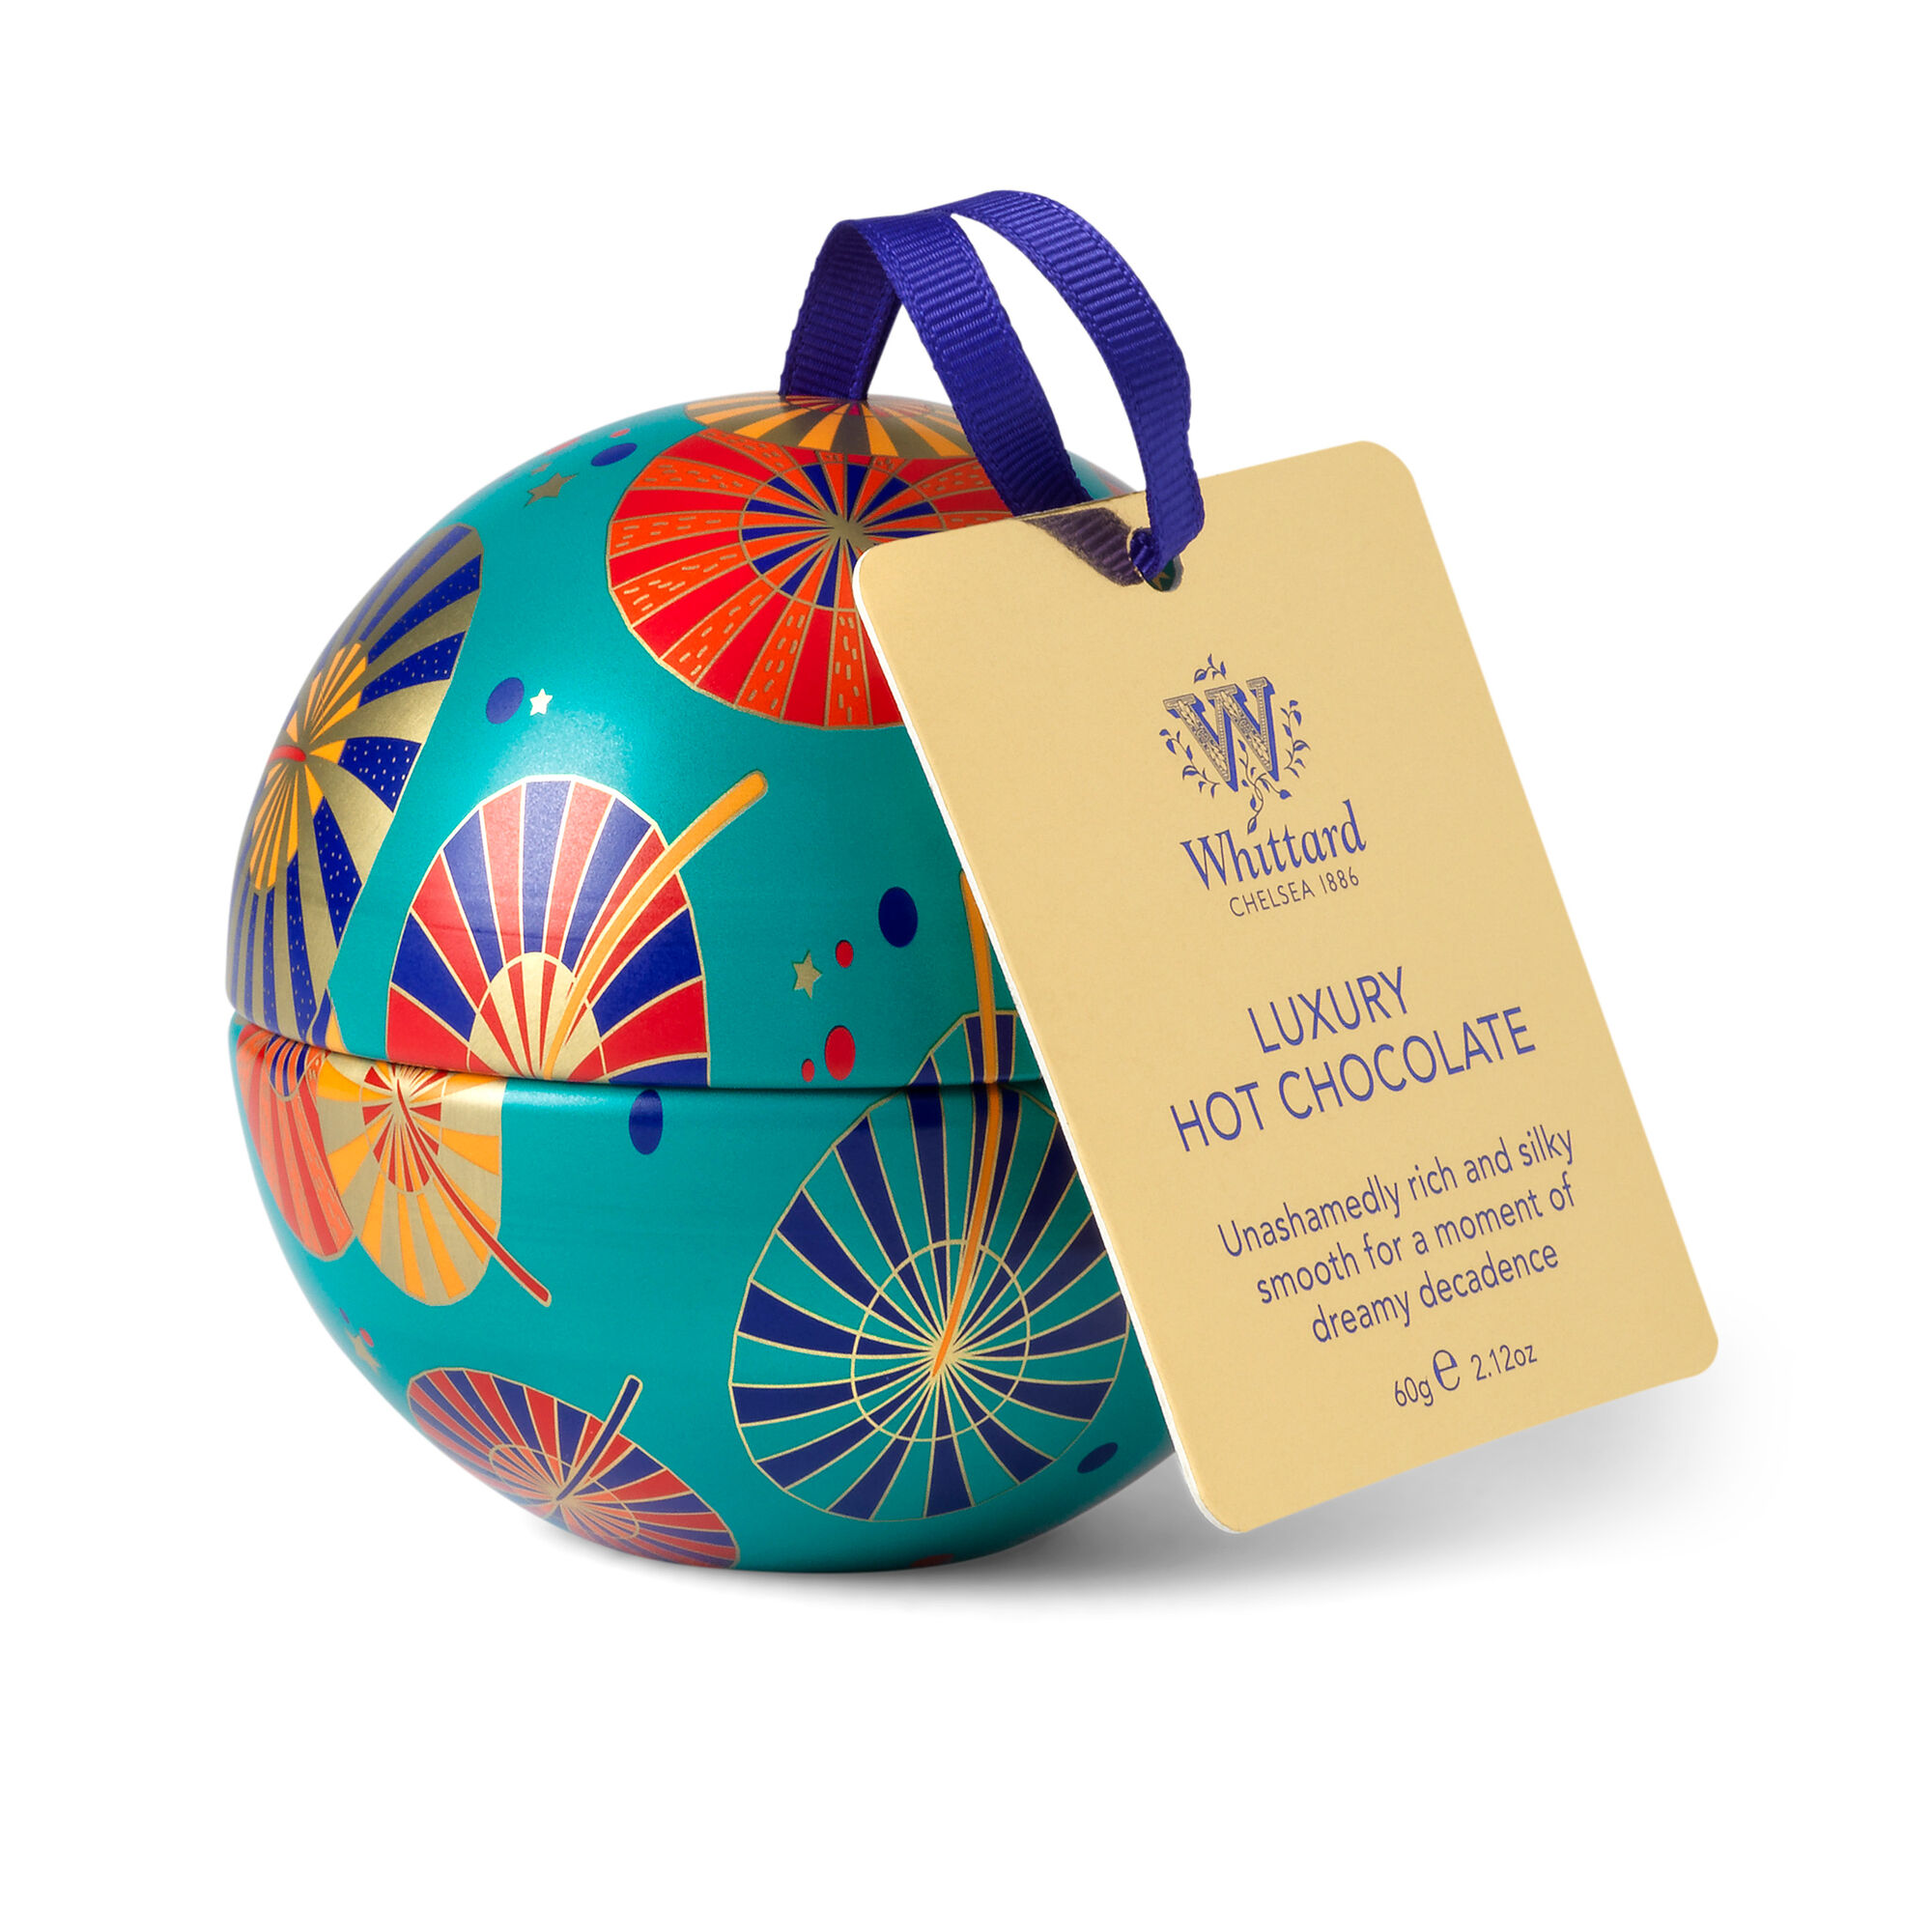 Luxury Hot Chocolate Bauble | Christmas Gifts | Whittard of Chelsea